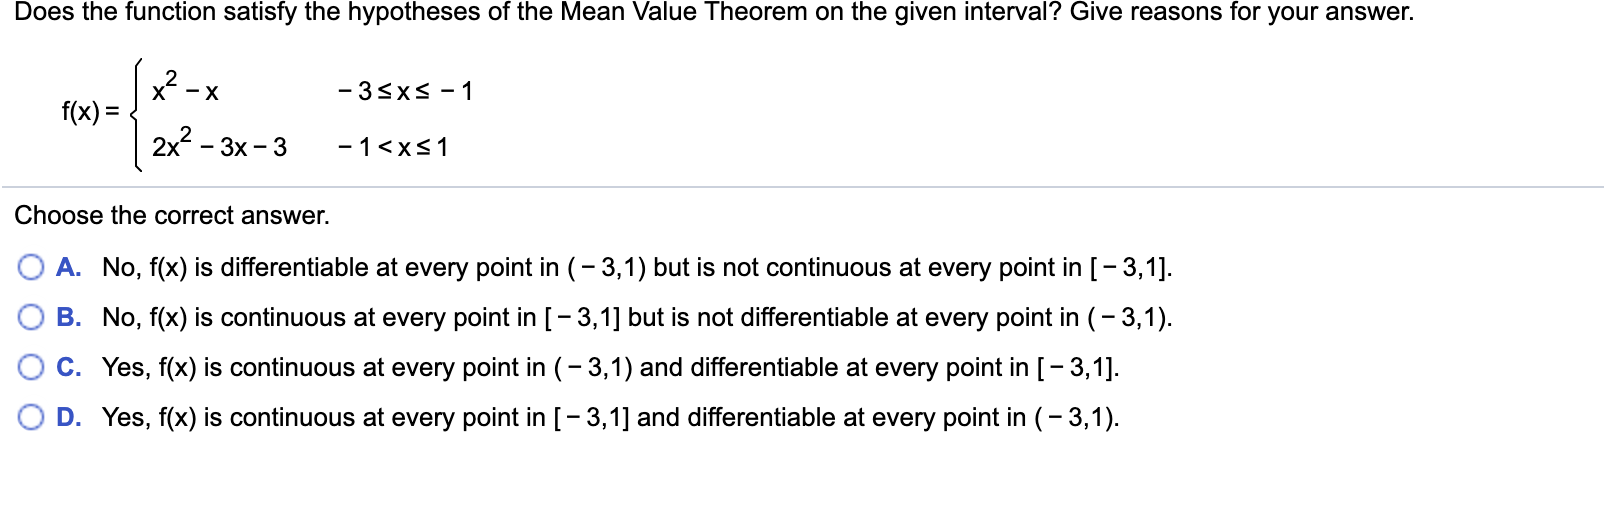 Does the function satisfy the hypotheses of the Mean Value Theorem on the given interval? Give reasons for your answer. -3sxs-1 - X f(x) 2x2 - 3x 3 -1 <xs1 Choose the correct answer. A. No, f(x) is differentiable at every point in (-3,1) but is not continuous at every point in [-3,1]. B. No, f(x) is continuous at every point in [- 3,1] but is not differentiable at every point in (-3,1) C. Yes, f(x) is continuous at every point in (-3,1) and differentiable at every point in [-3,1] D. Yes, f(x) is continuous at every point in [-3,1] and differentiable at every point in (-3,1).